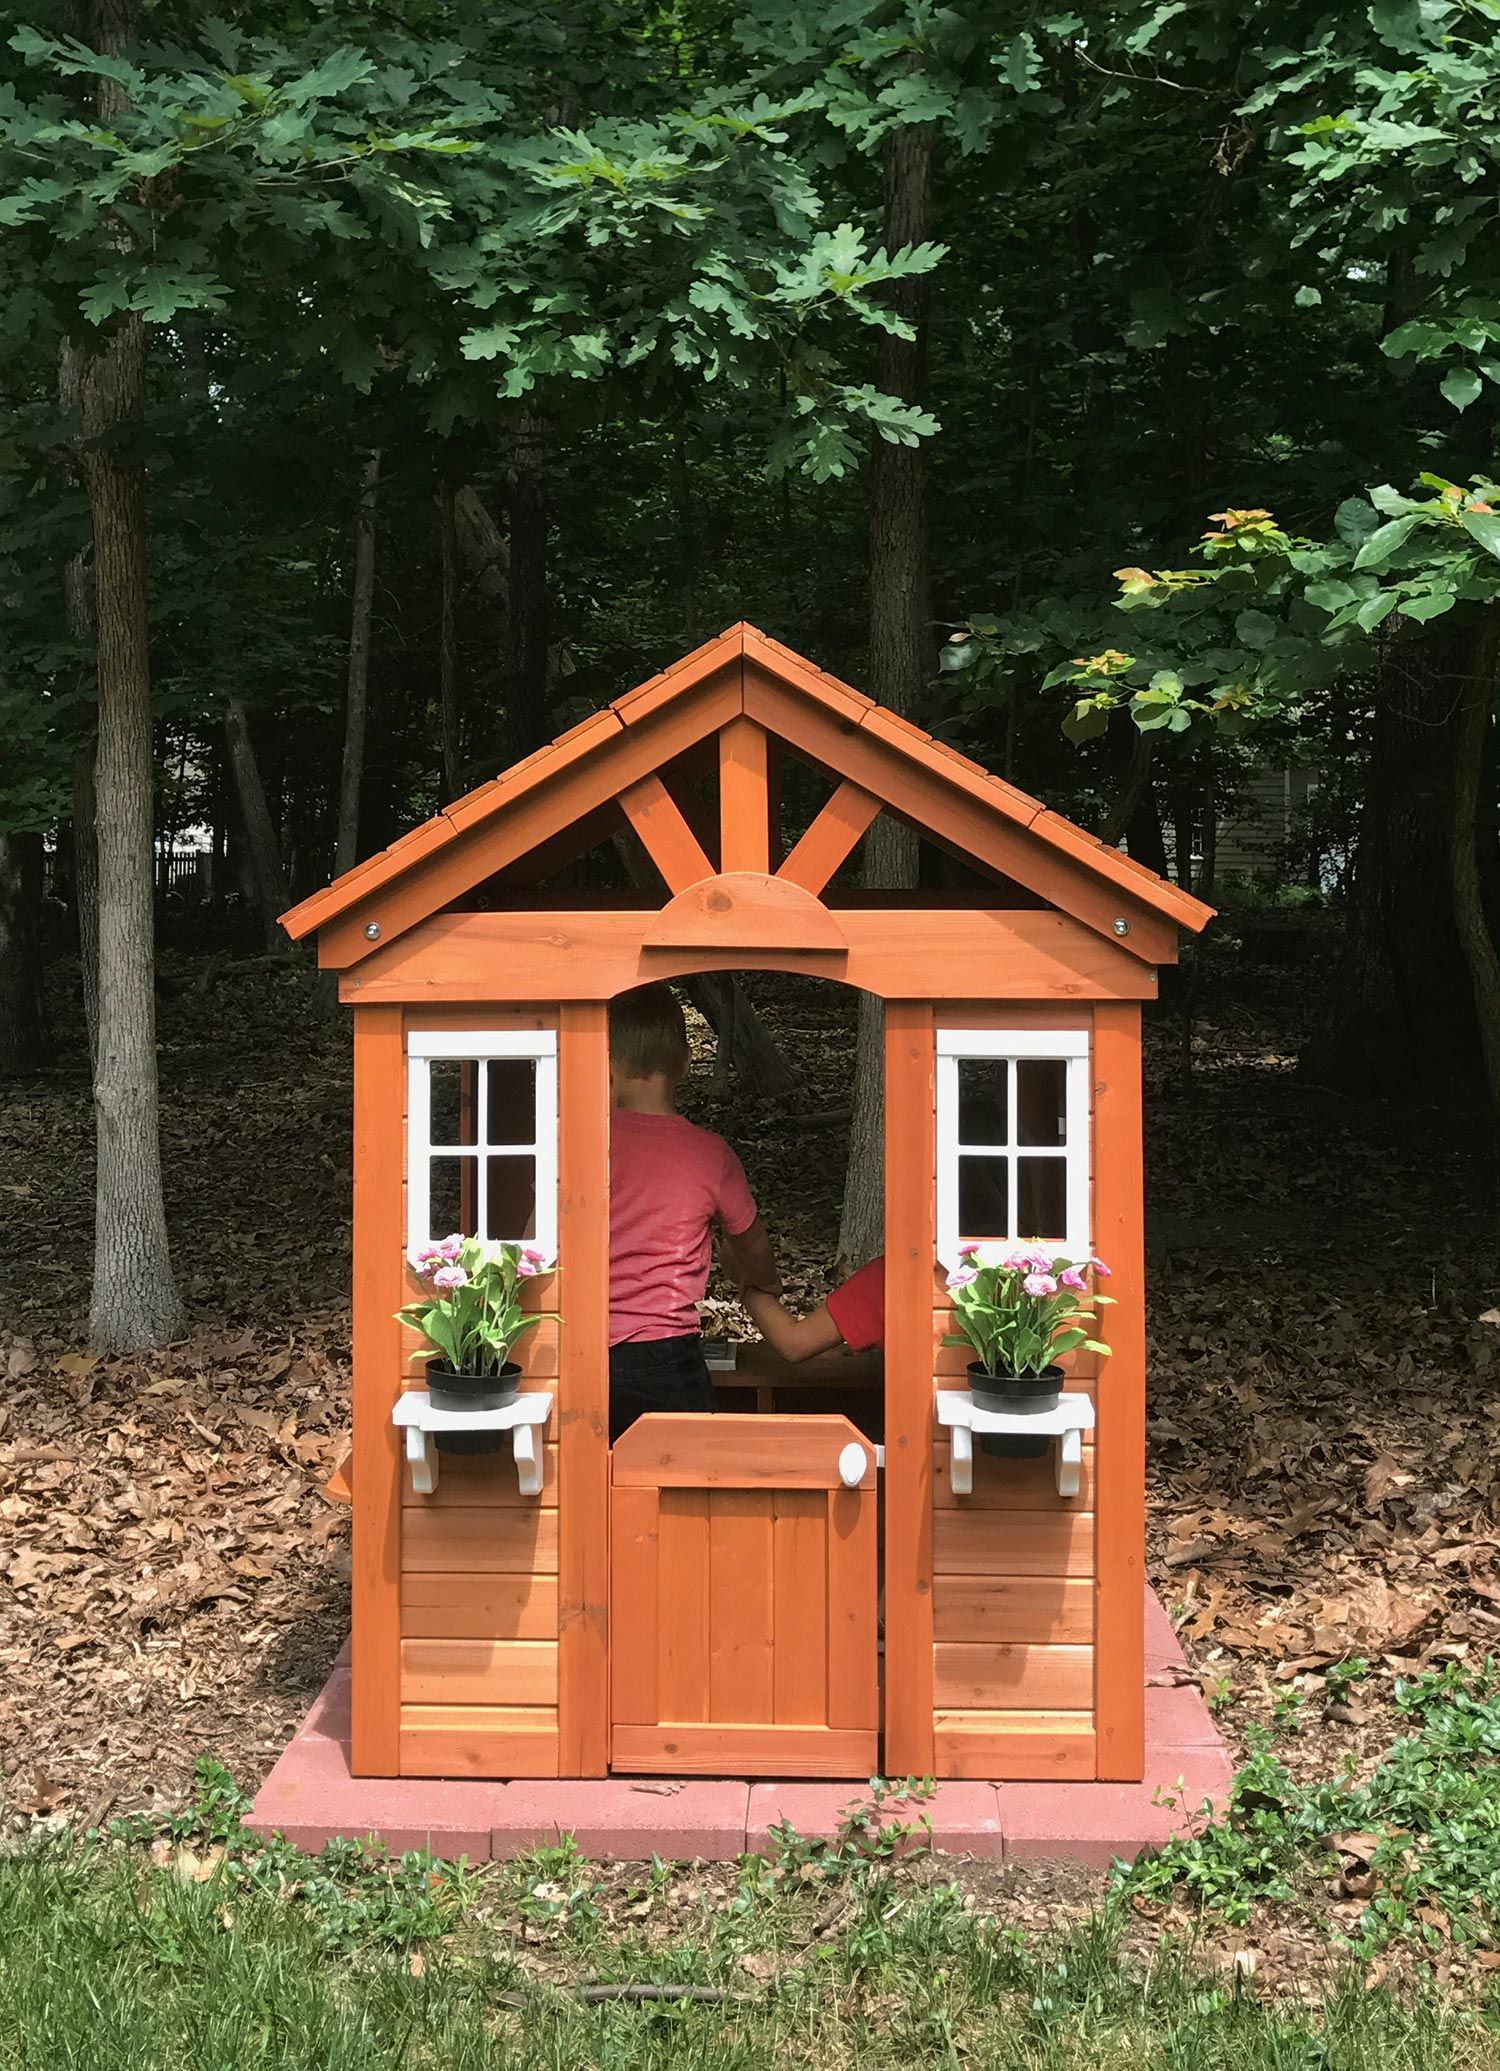 a little wooden playhouse in the woods wooden playhouse